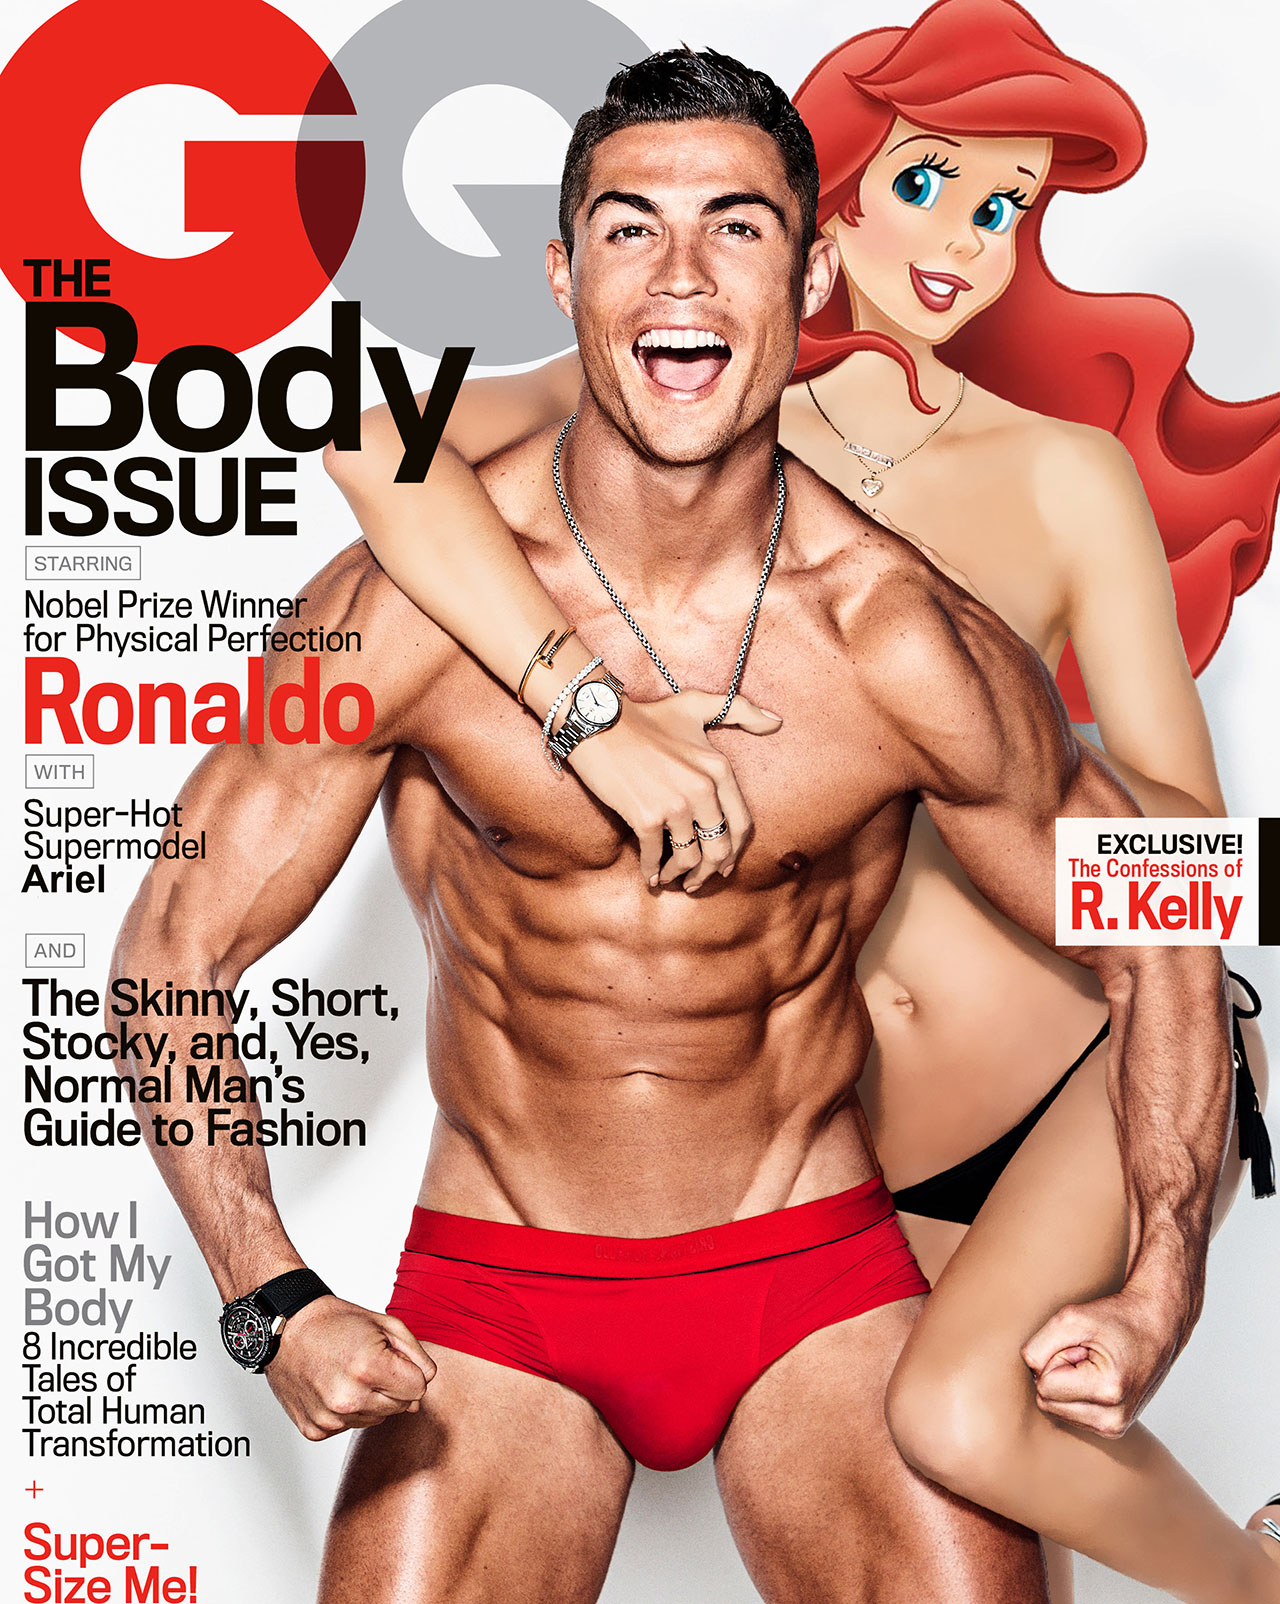 Introducing GQ's Body Issue featuring Cristiano Ronaldo and Alessandra Ambrosio as Ariel. Photographed by Ben Watts, photo edit by Gregory Masouras.